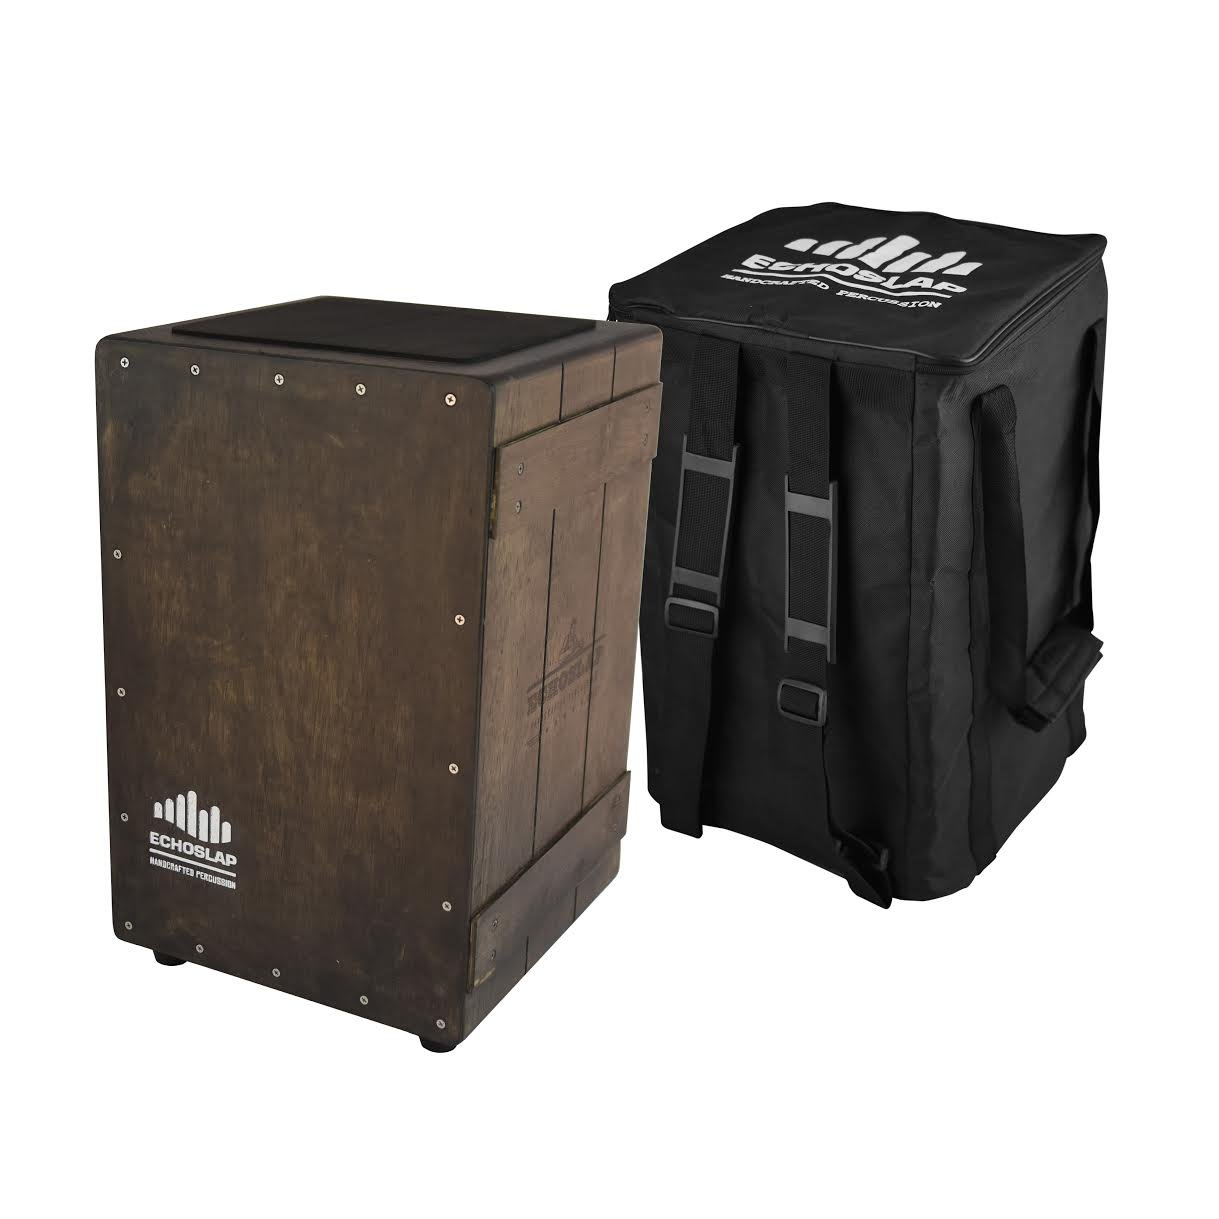 Echoslap Vintage Crate Cajon -Vintage Dark, Hand Crafted, Siam Oak Body, Maple Front Plus Gig Bag by Echoslap Percussion